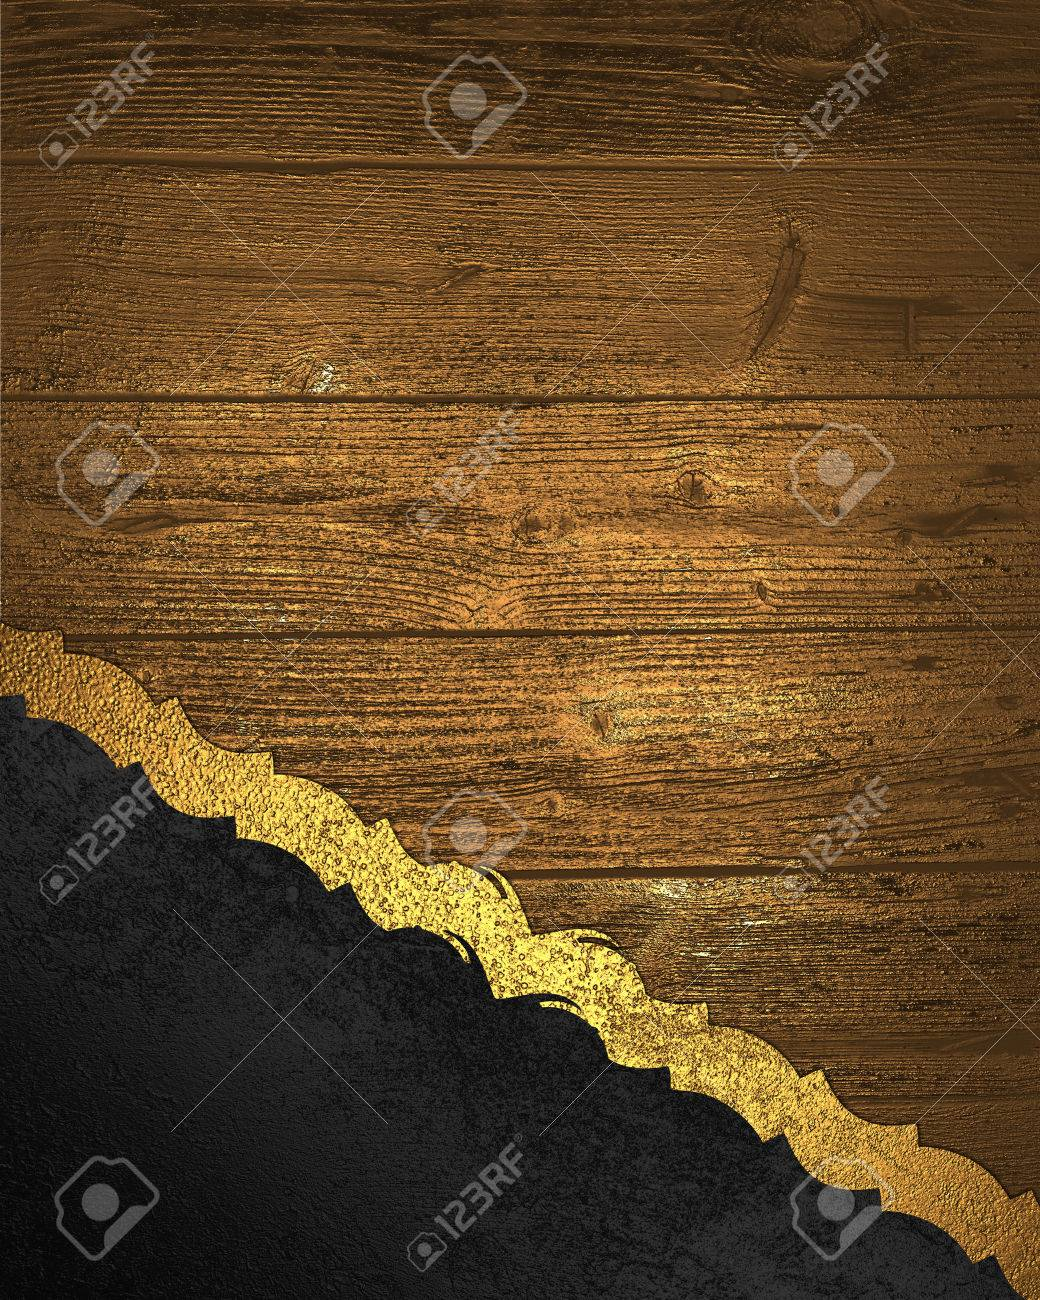 Element Design Of Black Texture With Gold Wooden Nameplate Design Stock Photo Picture And Royalty Free Image Image 36090667